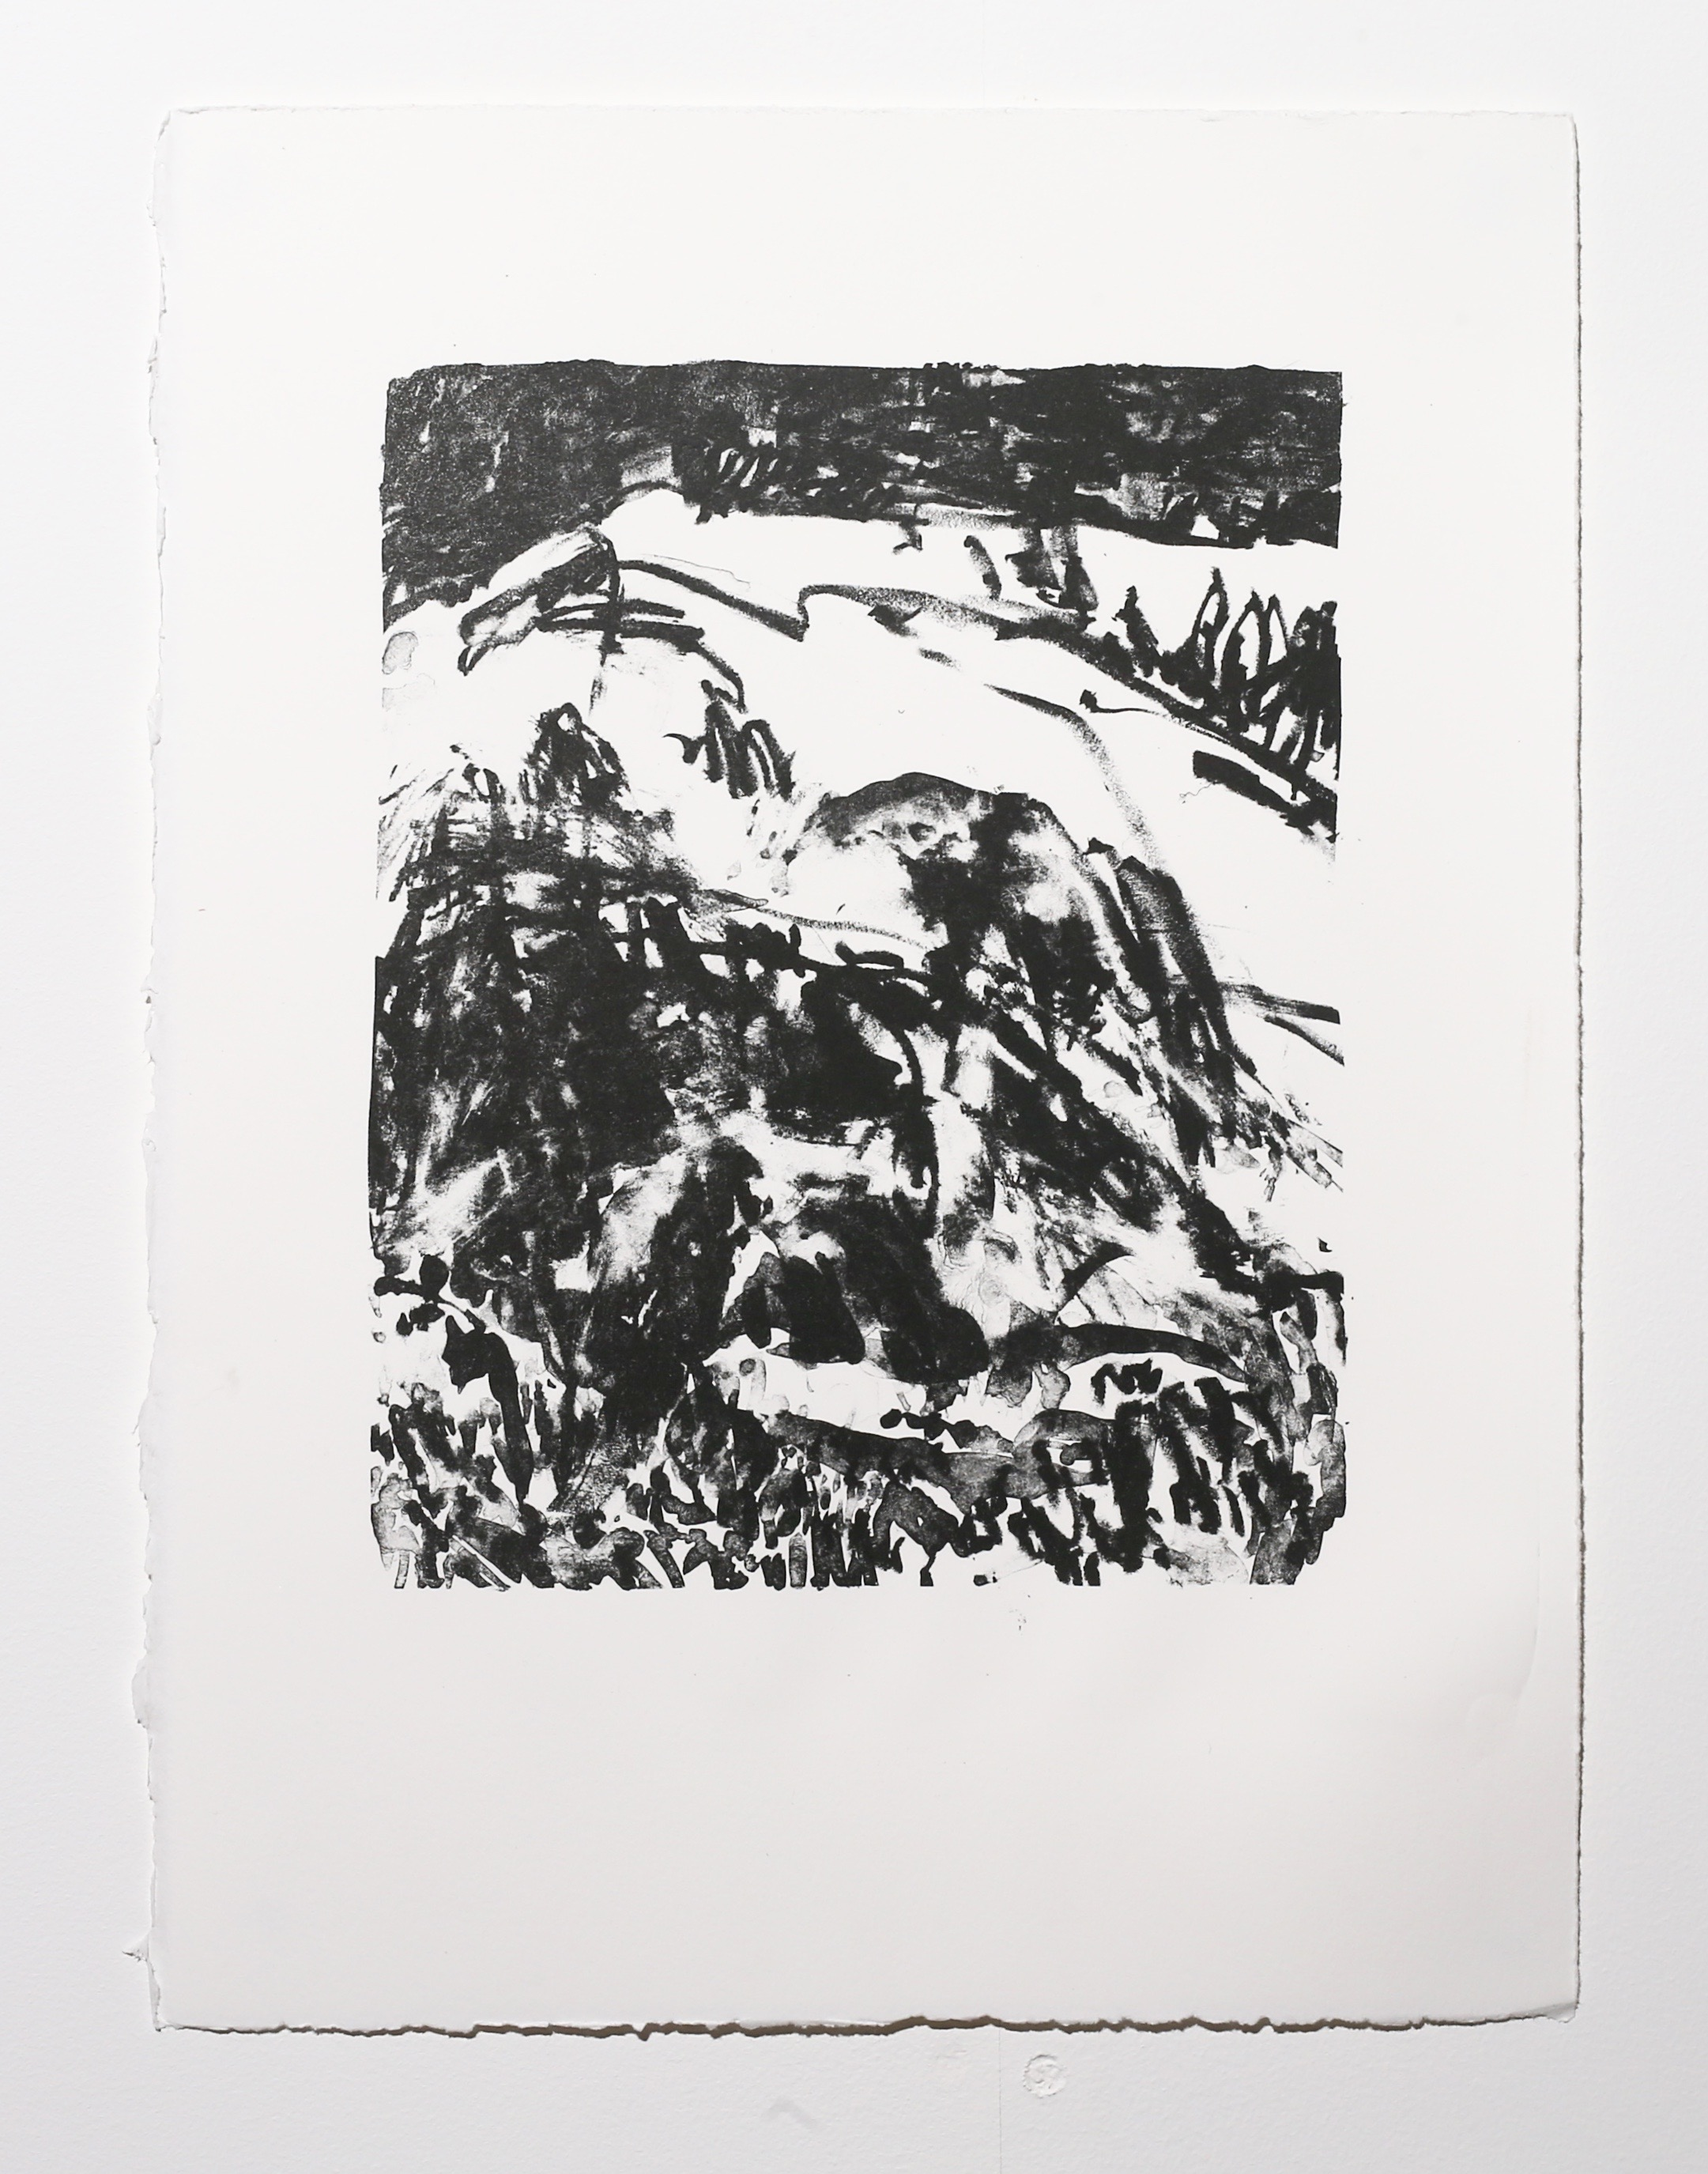 Landscape , 2019, lithograph on paper, 38 x 28.5 cm (paper size) Edition of 4 $170